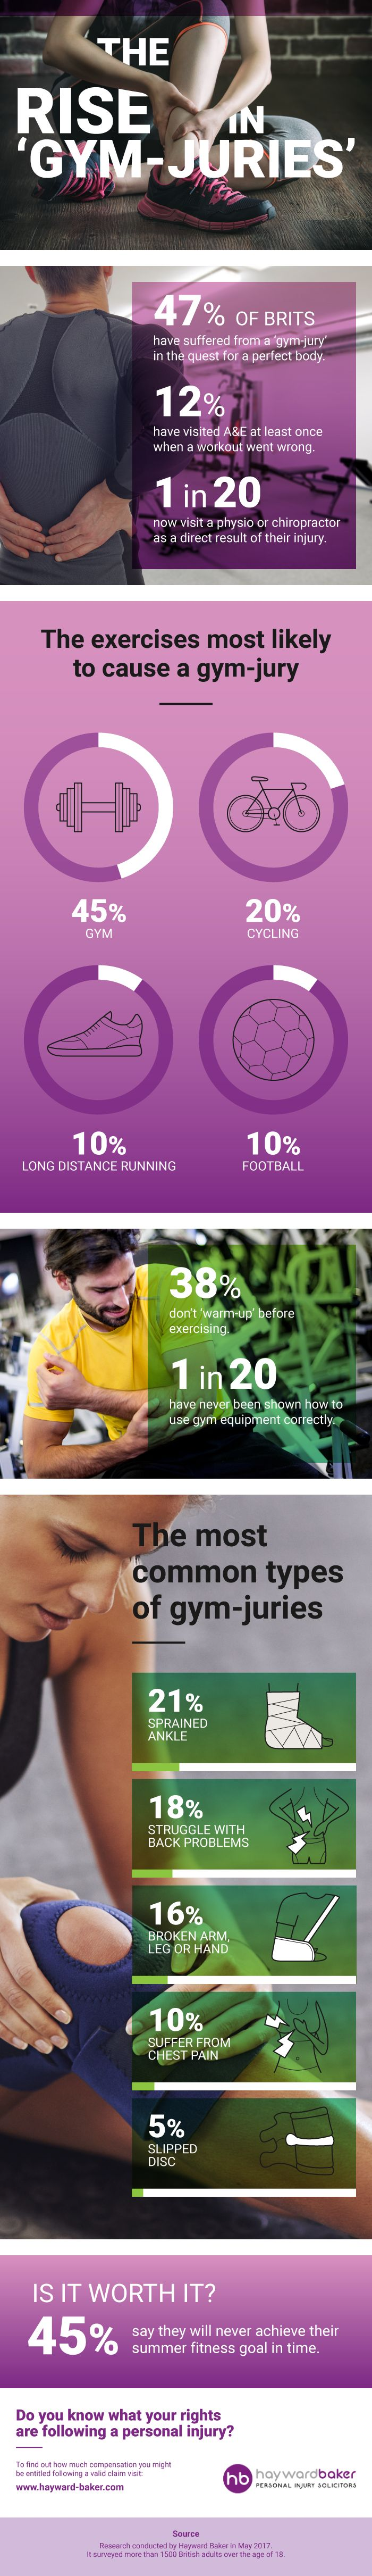 The Rise in Gym-Juries Infographic. Click here to find out more: http://withlovefromlou.co.uk/2017/08/avoid-gym-juries/